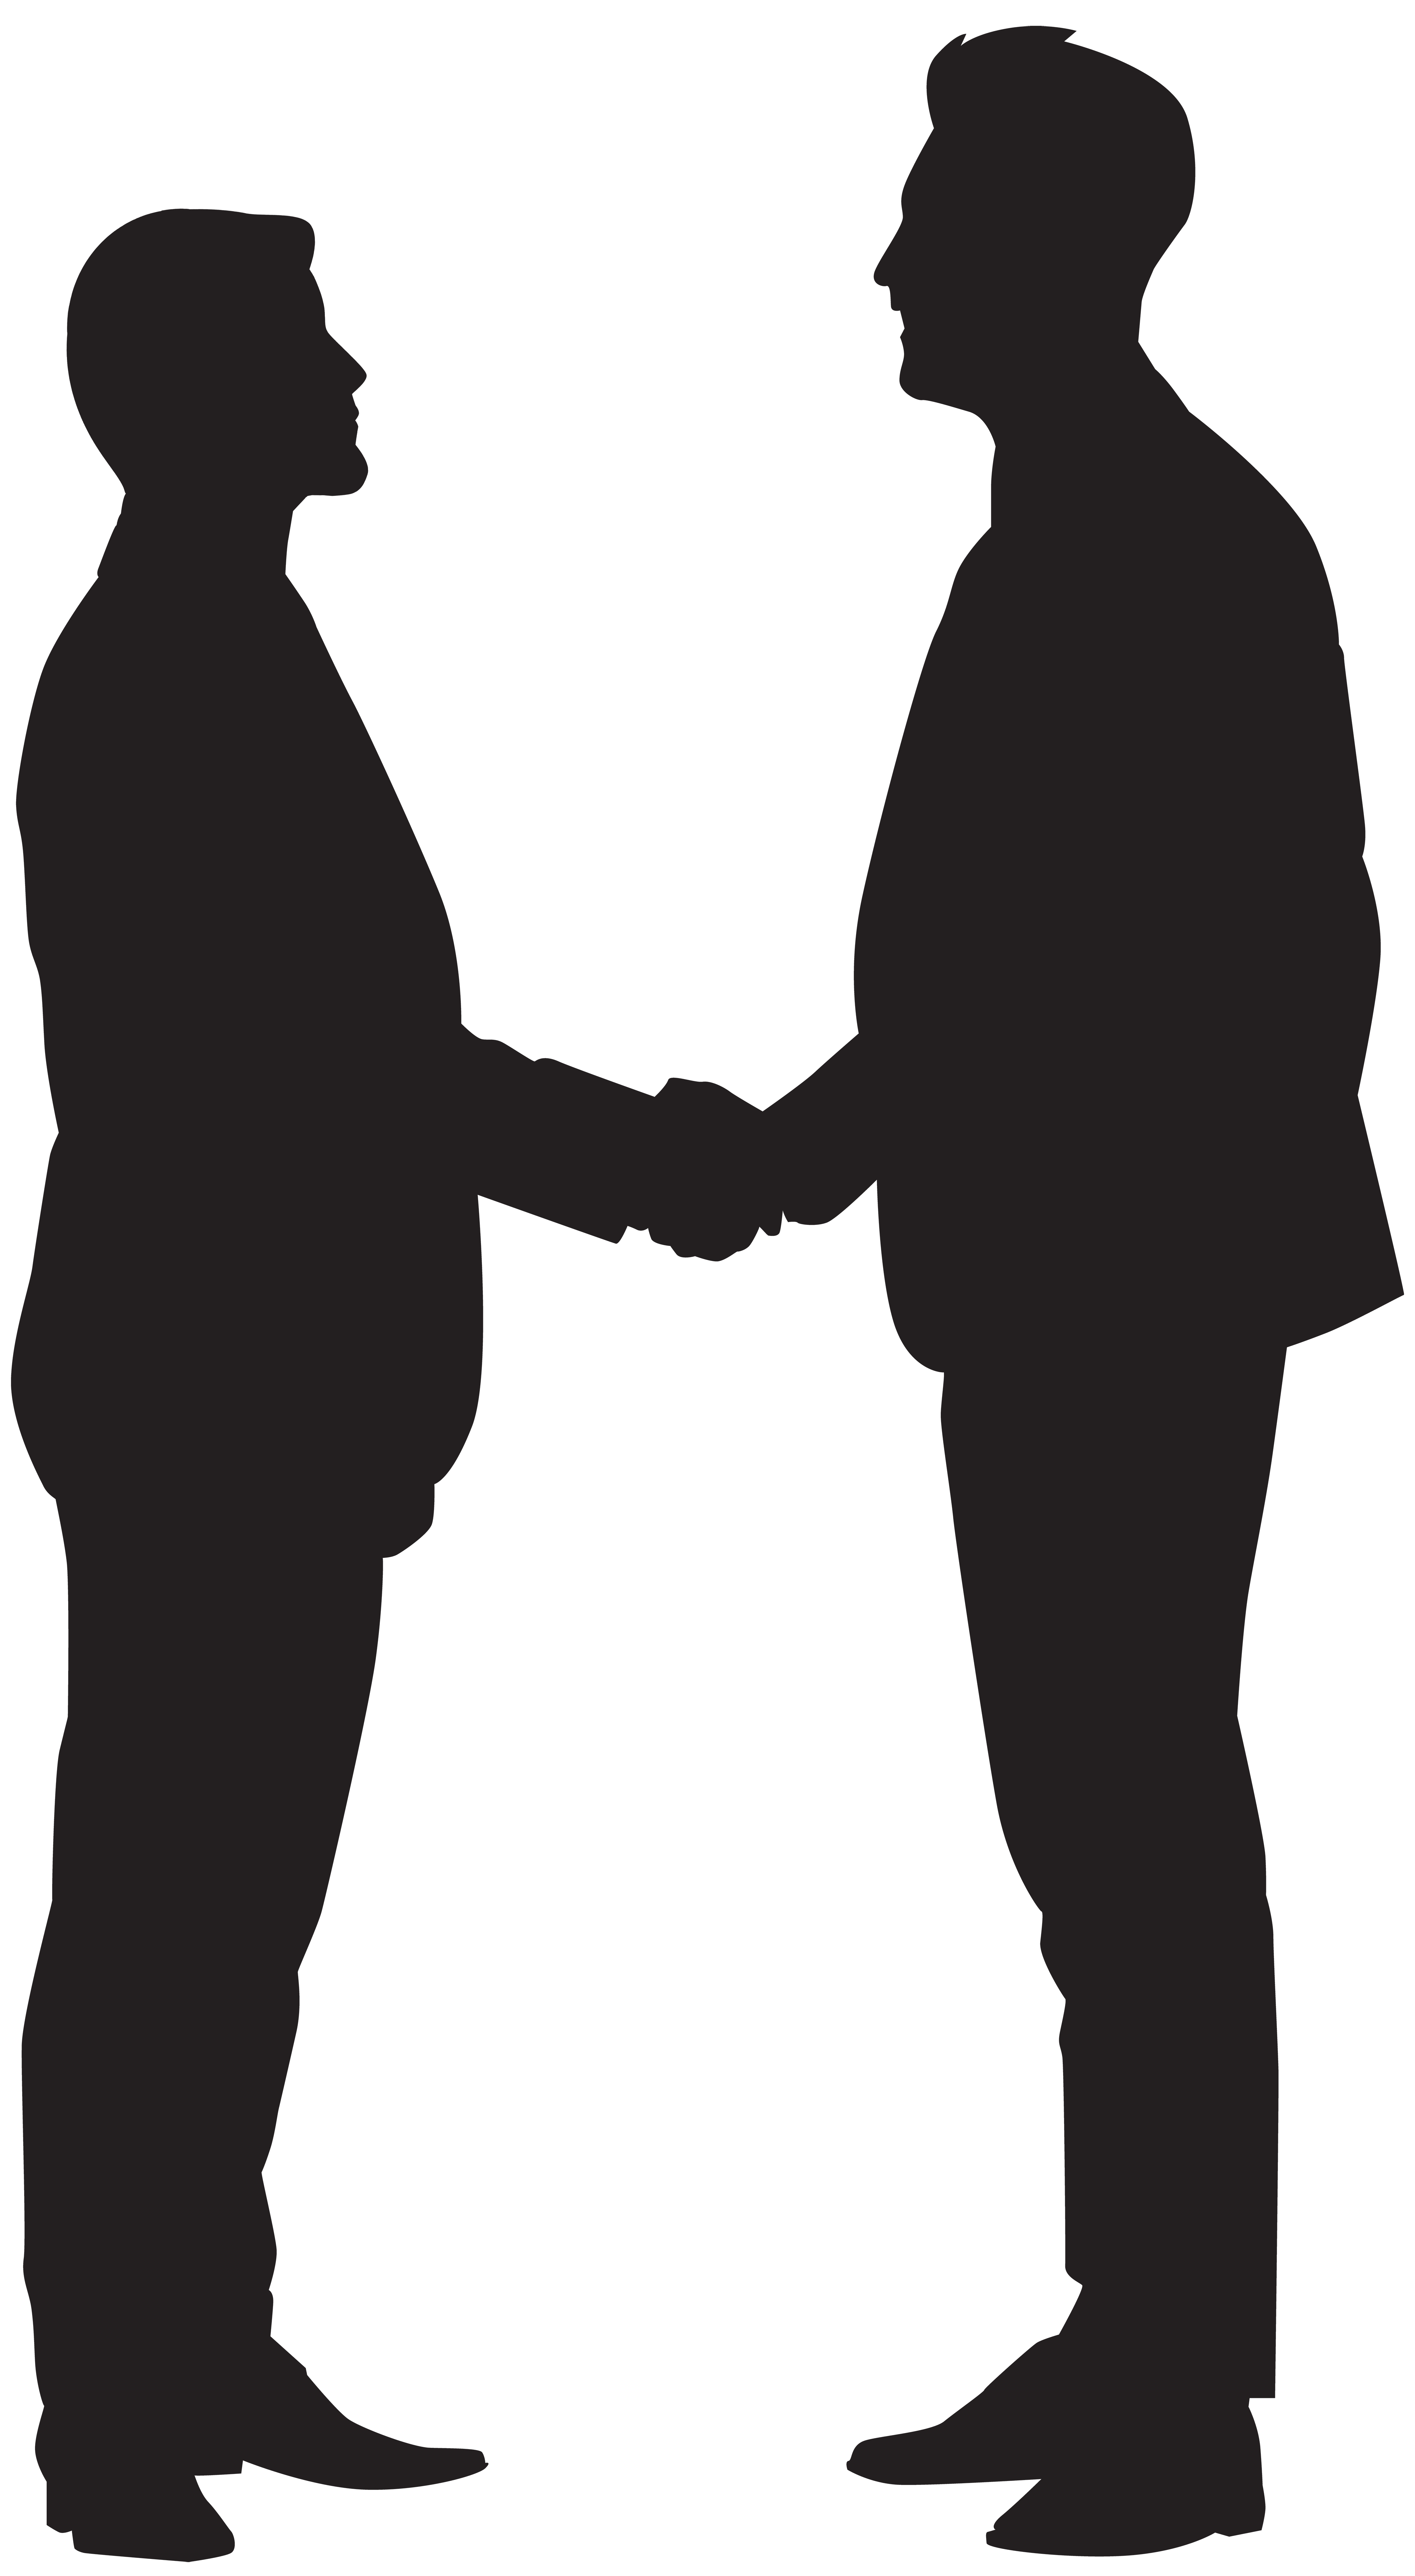 Professional clipart handshake. Male silhouette standing at